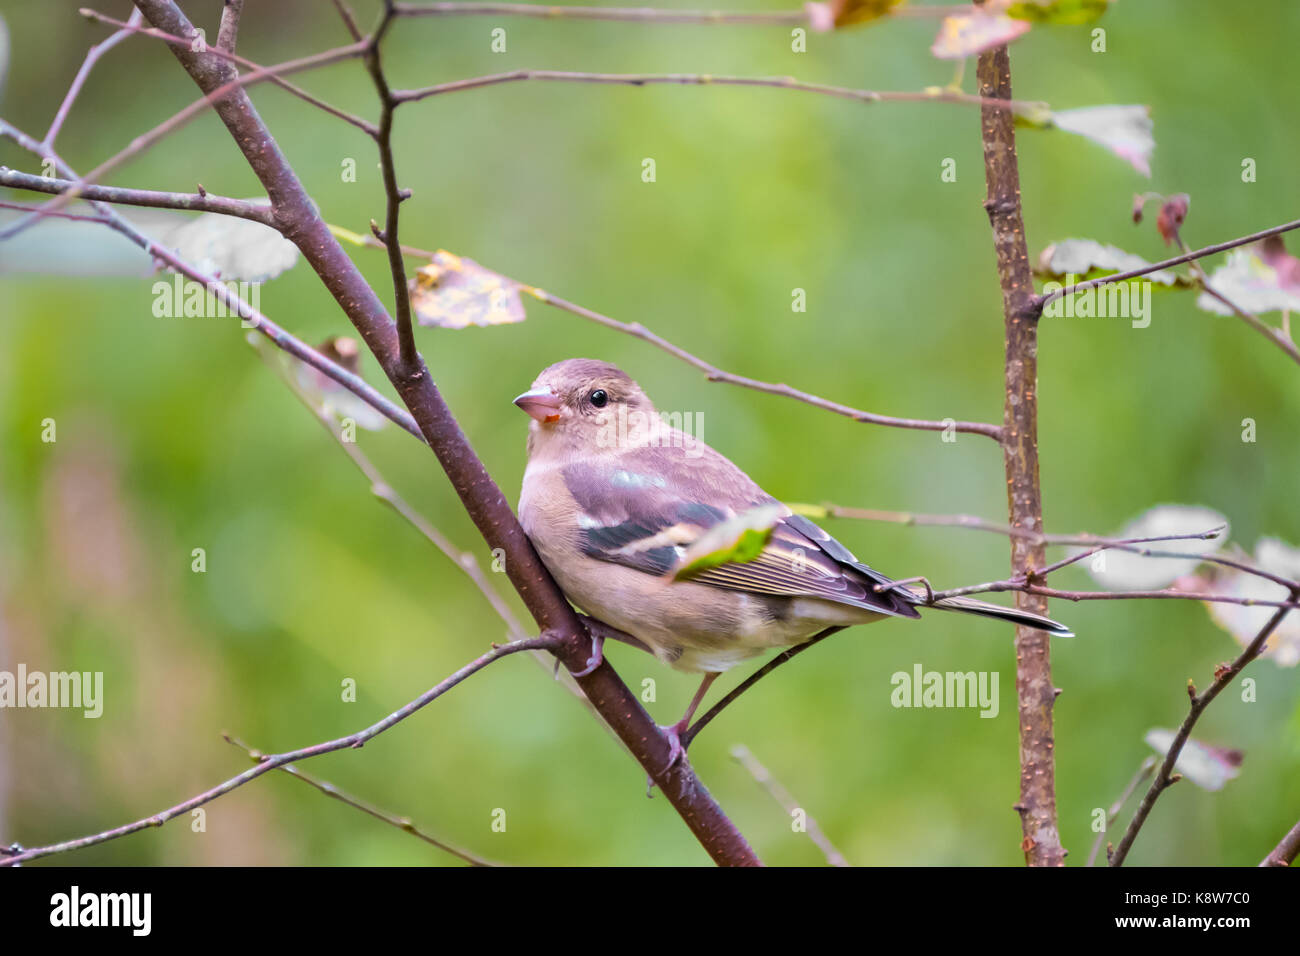 Chaffinch on a tree branch - Stock Image